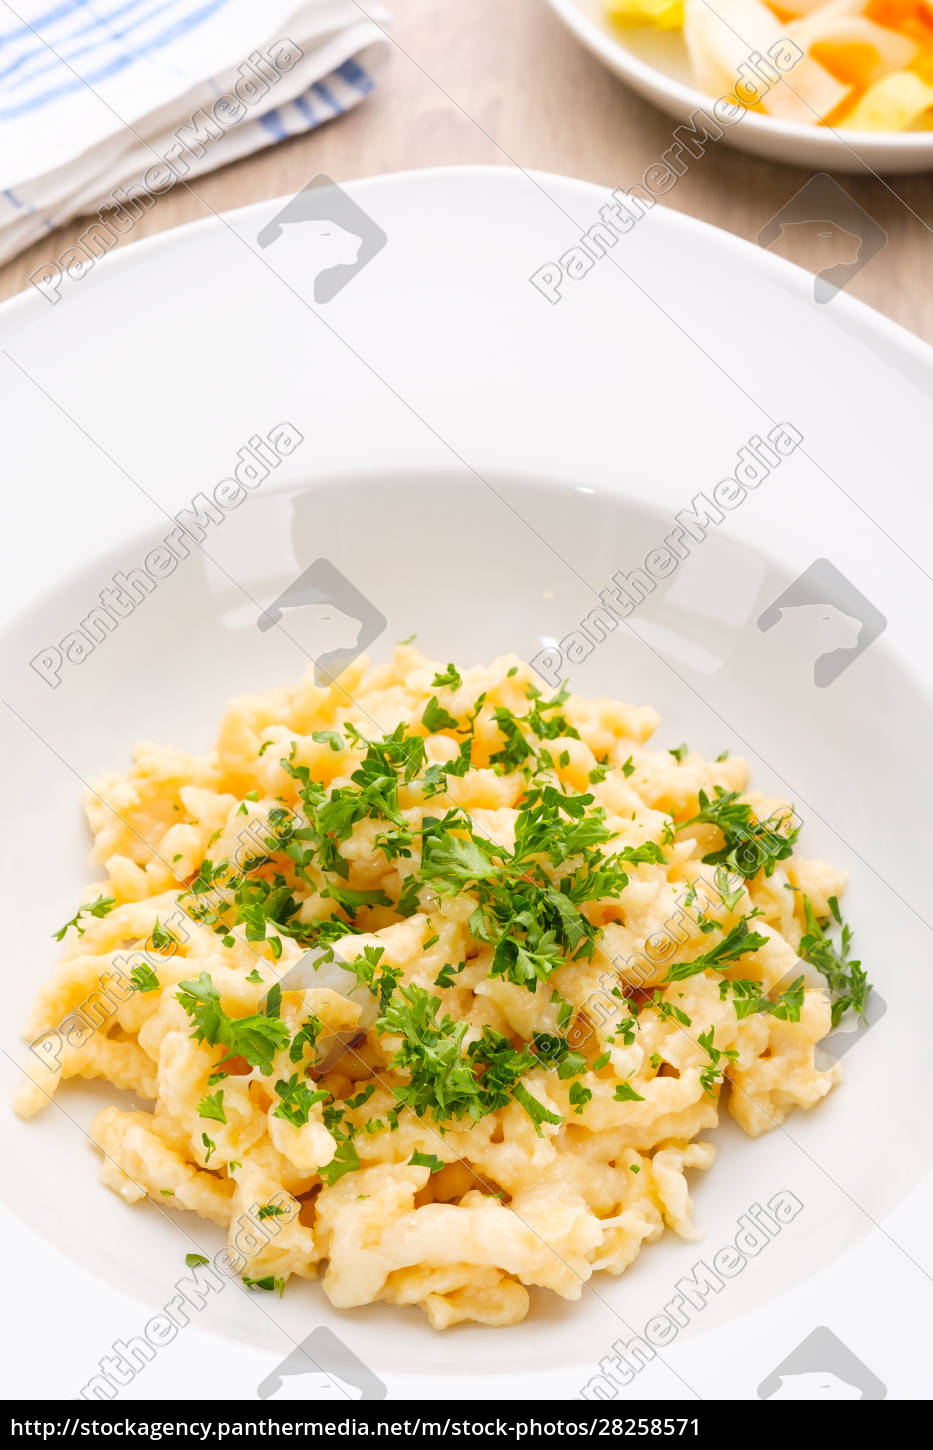 plate, cheese, noodles, with, chives - 28258571